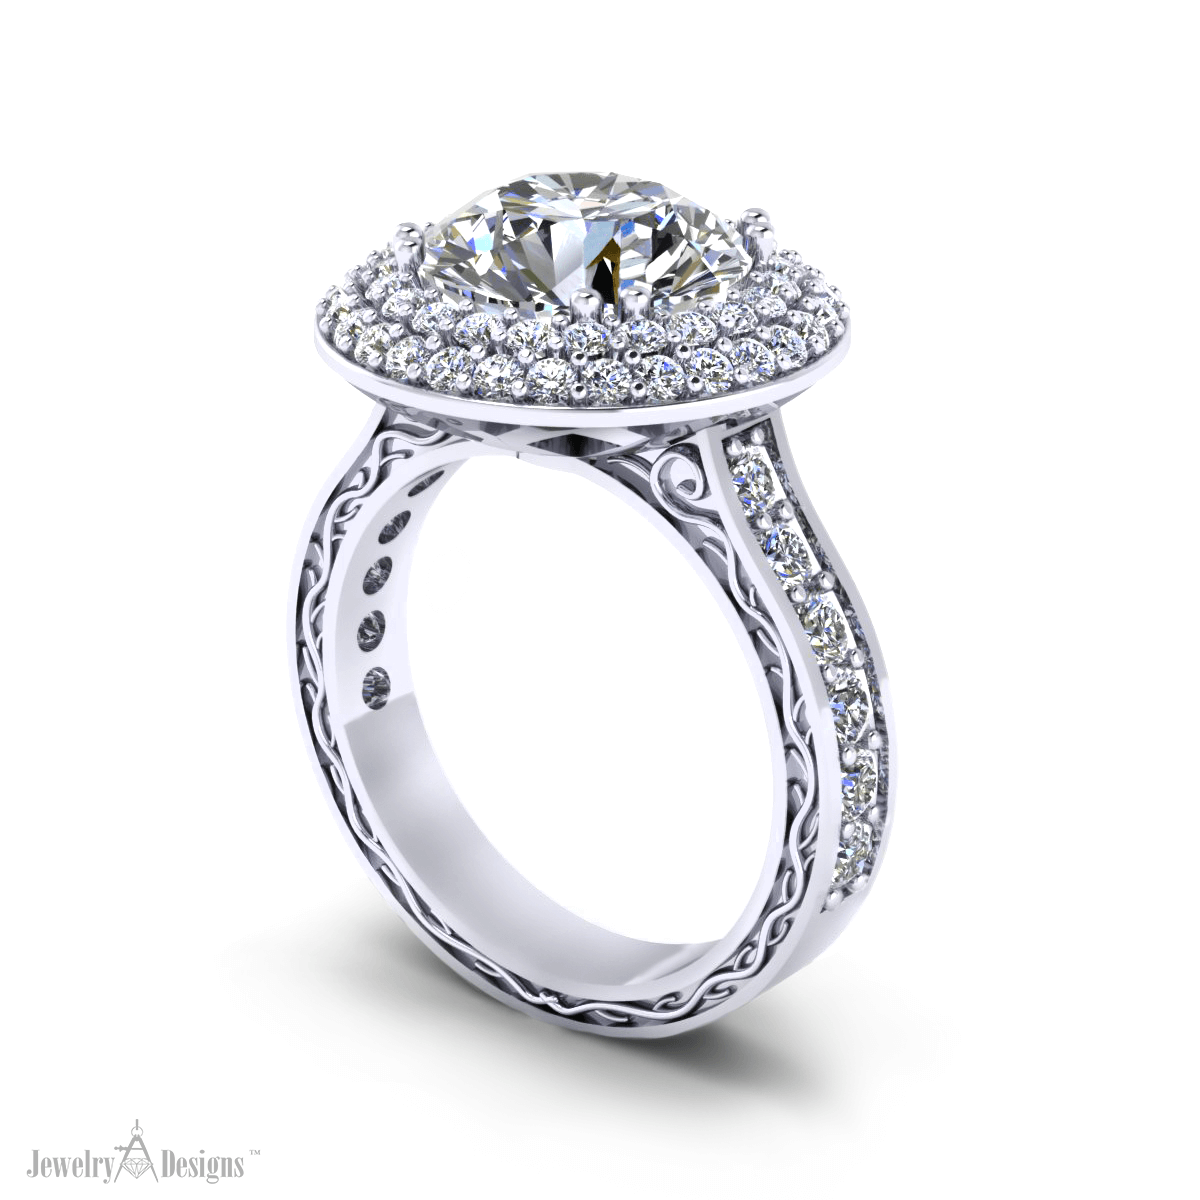 c150577 Ornate Diamond Ring